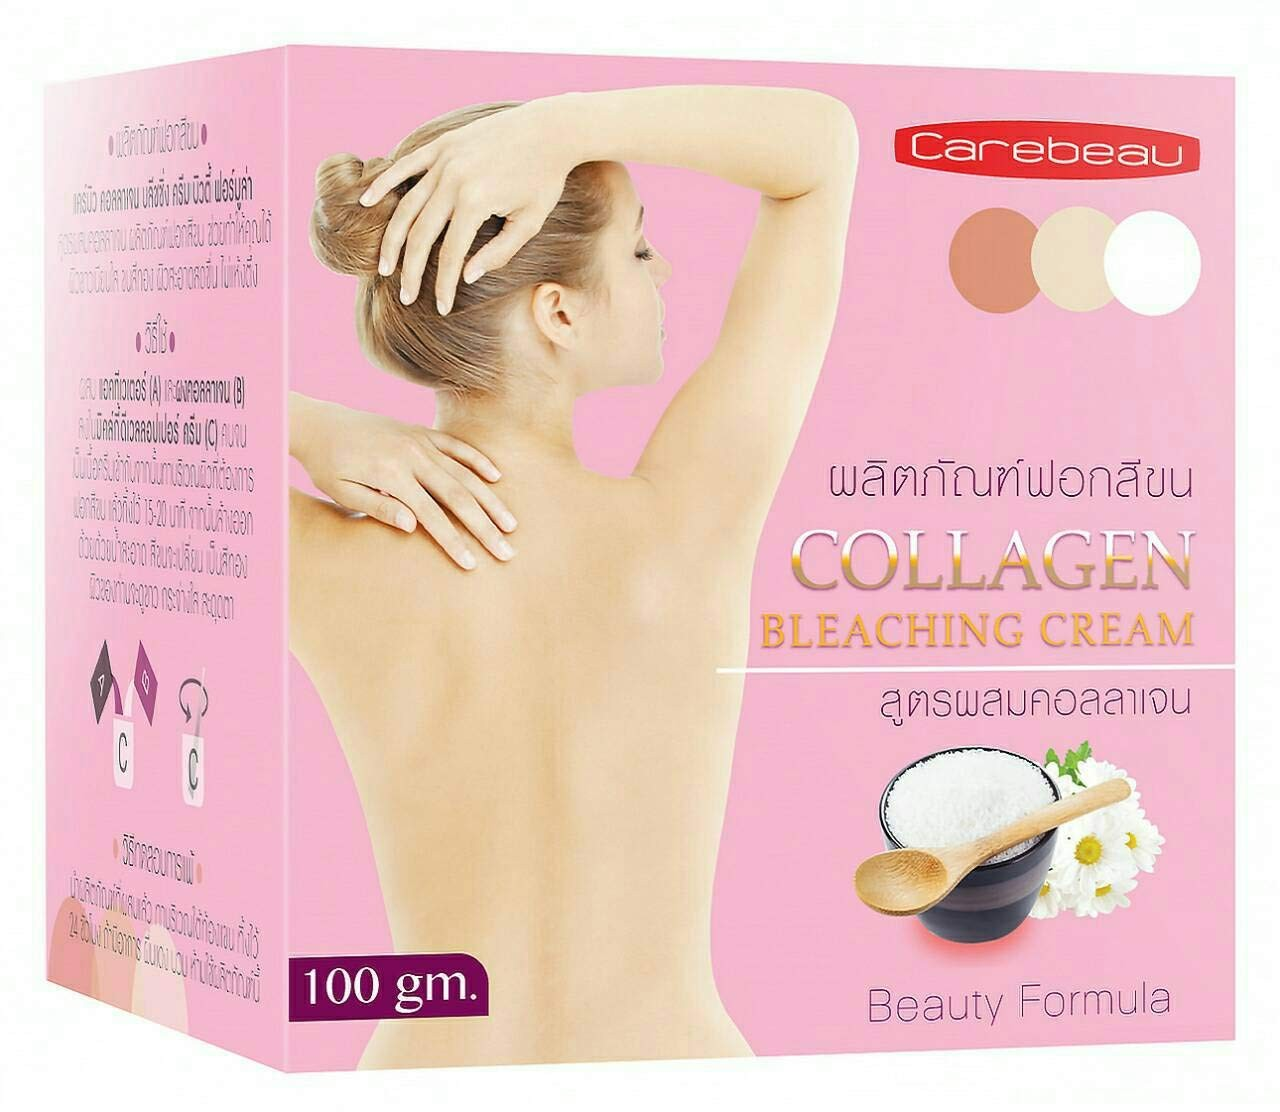 Bleaching hair care products distributor collagen Bleach Cream formulated with collagen.